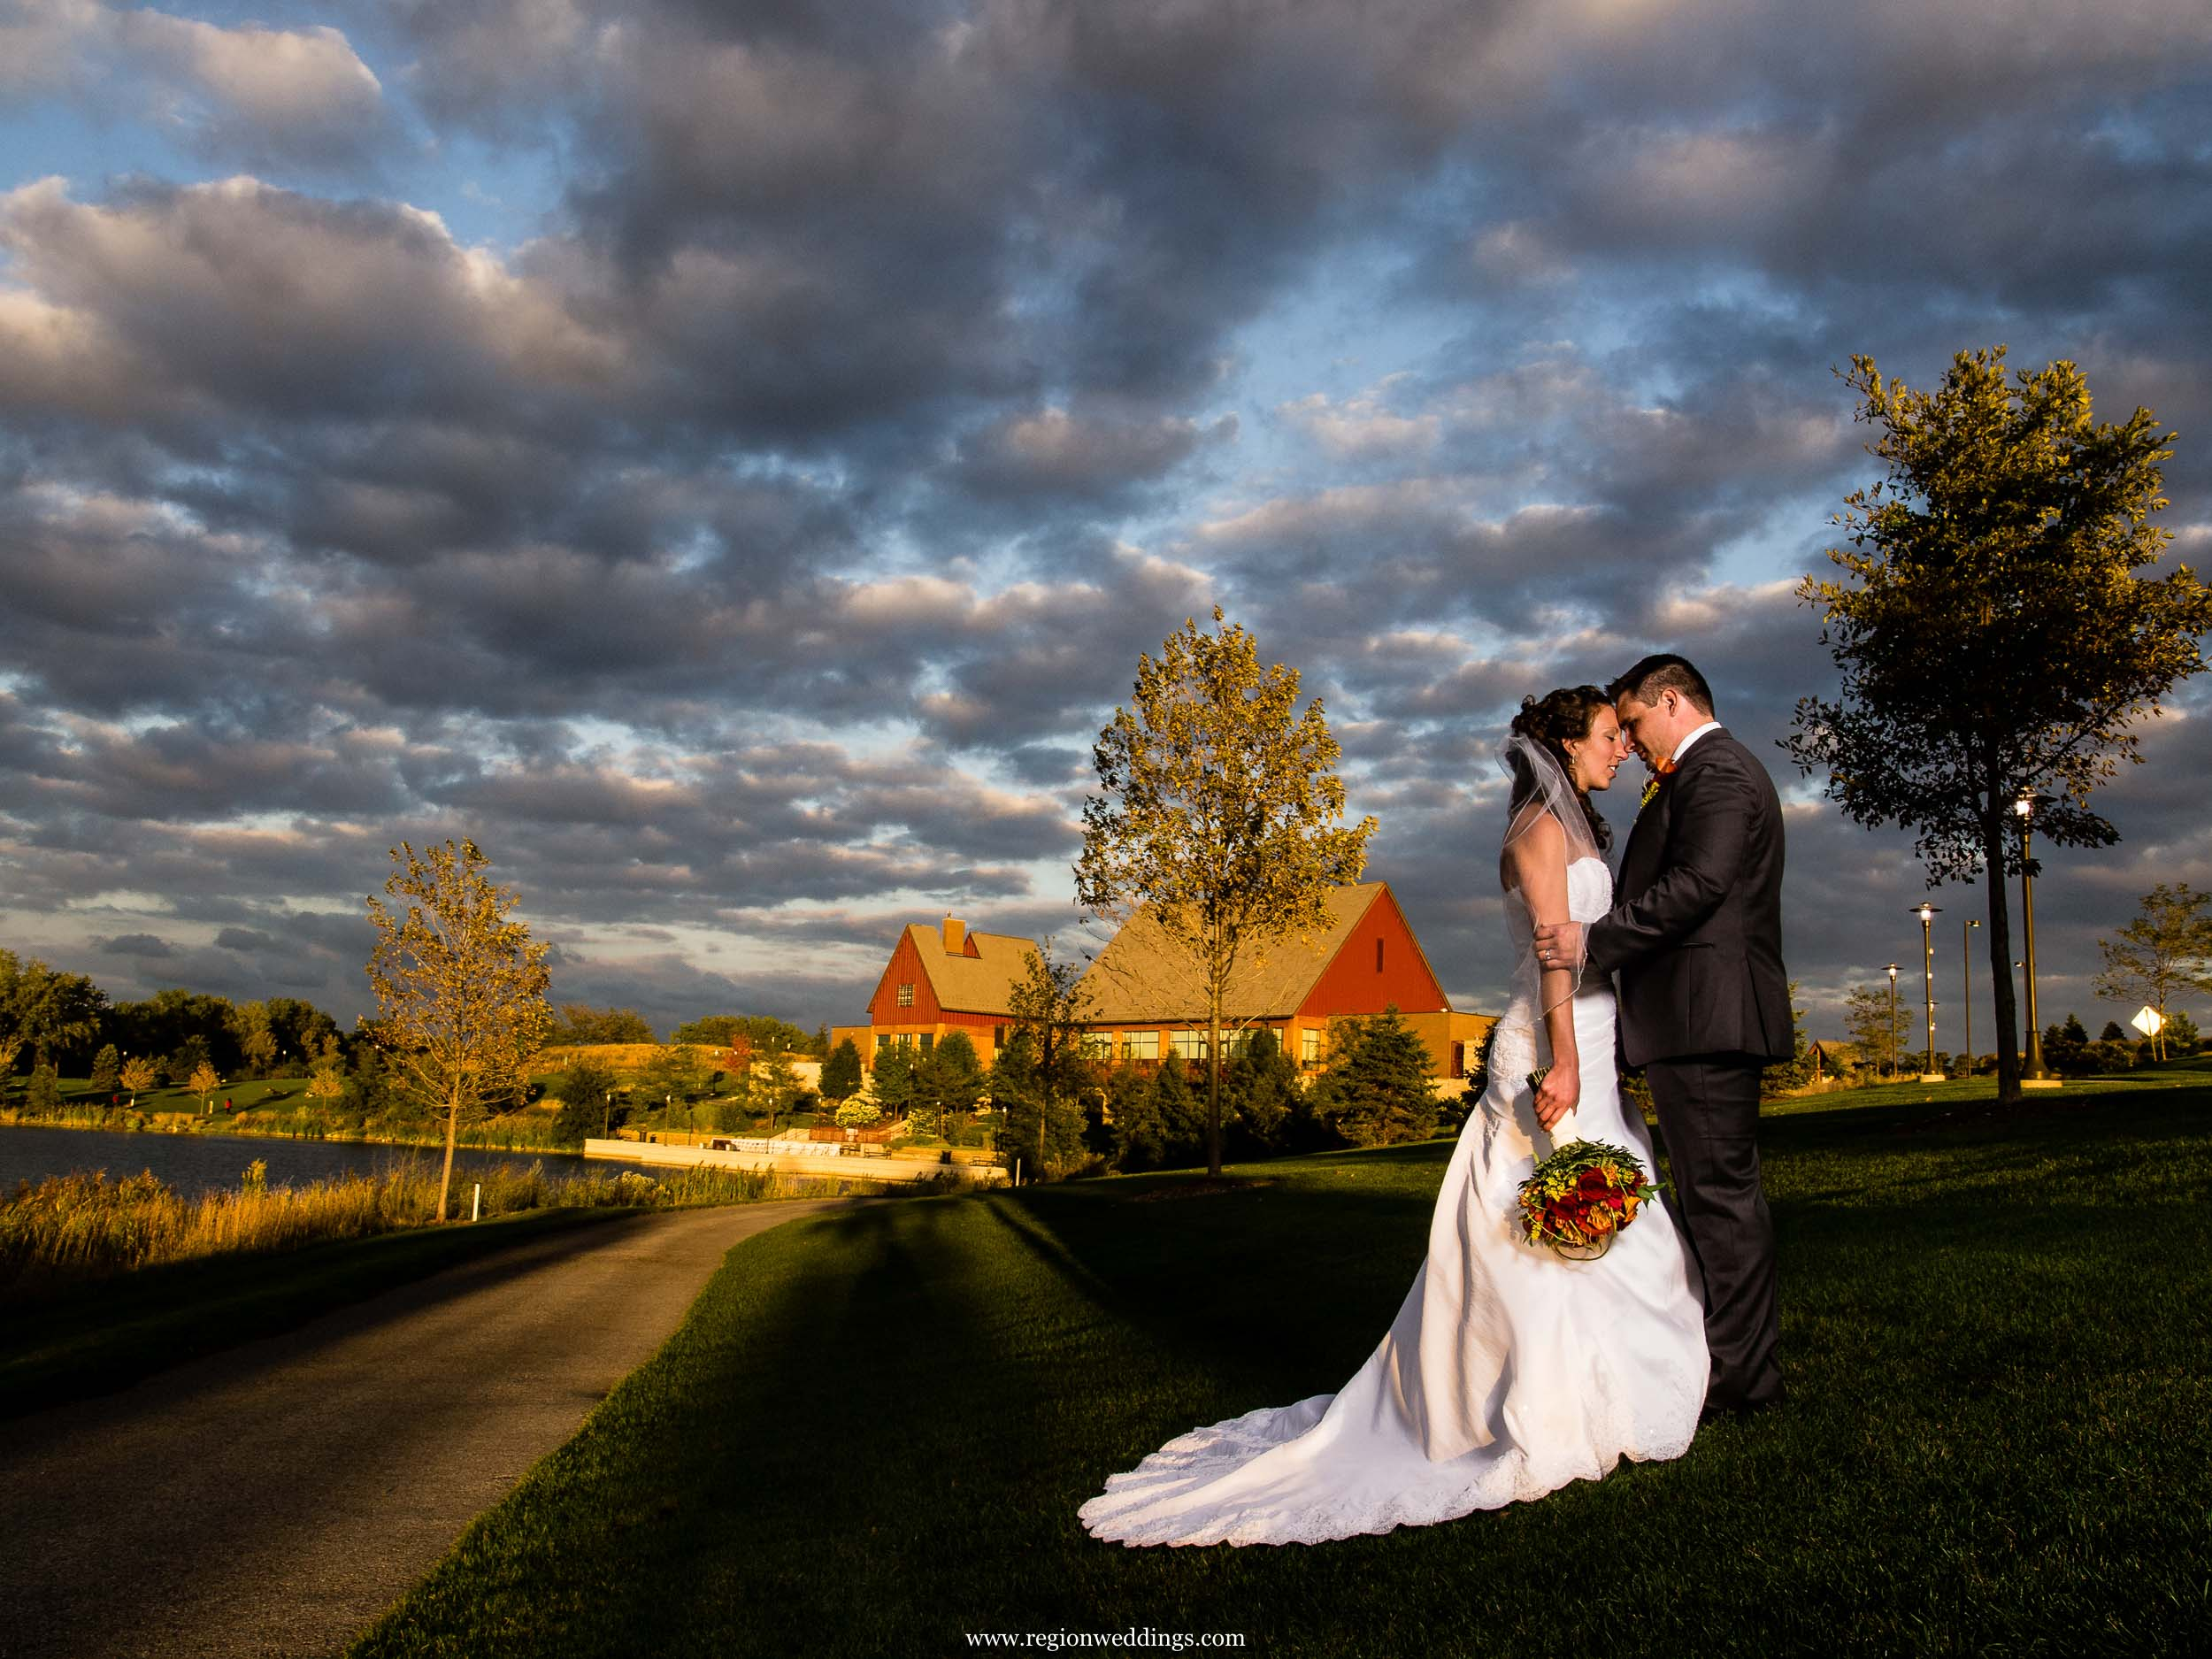 region-weddings-centennial-park-dramatic-clouds.jpg